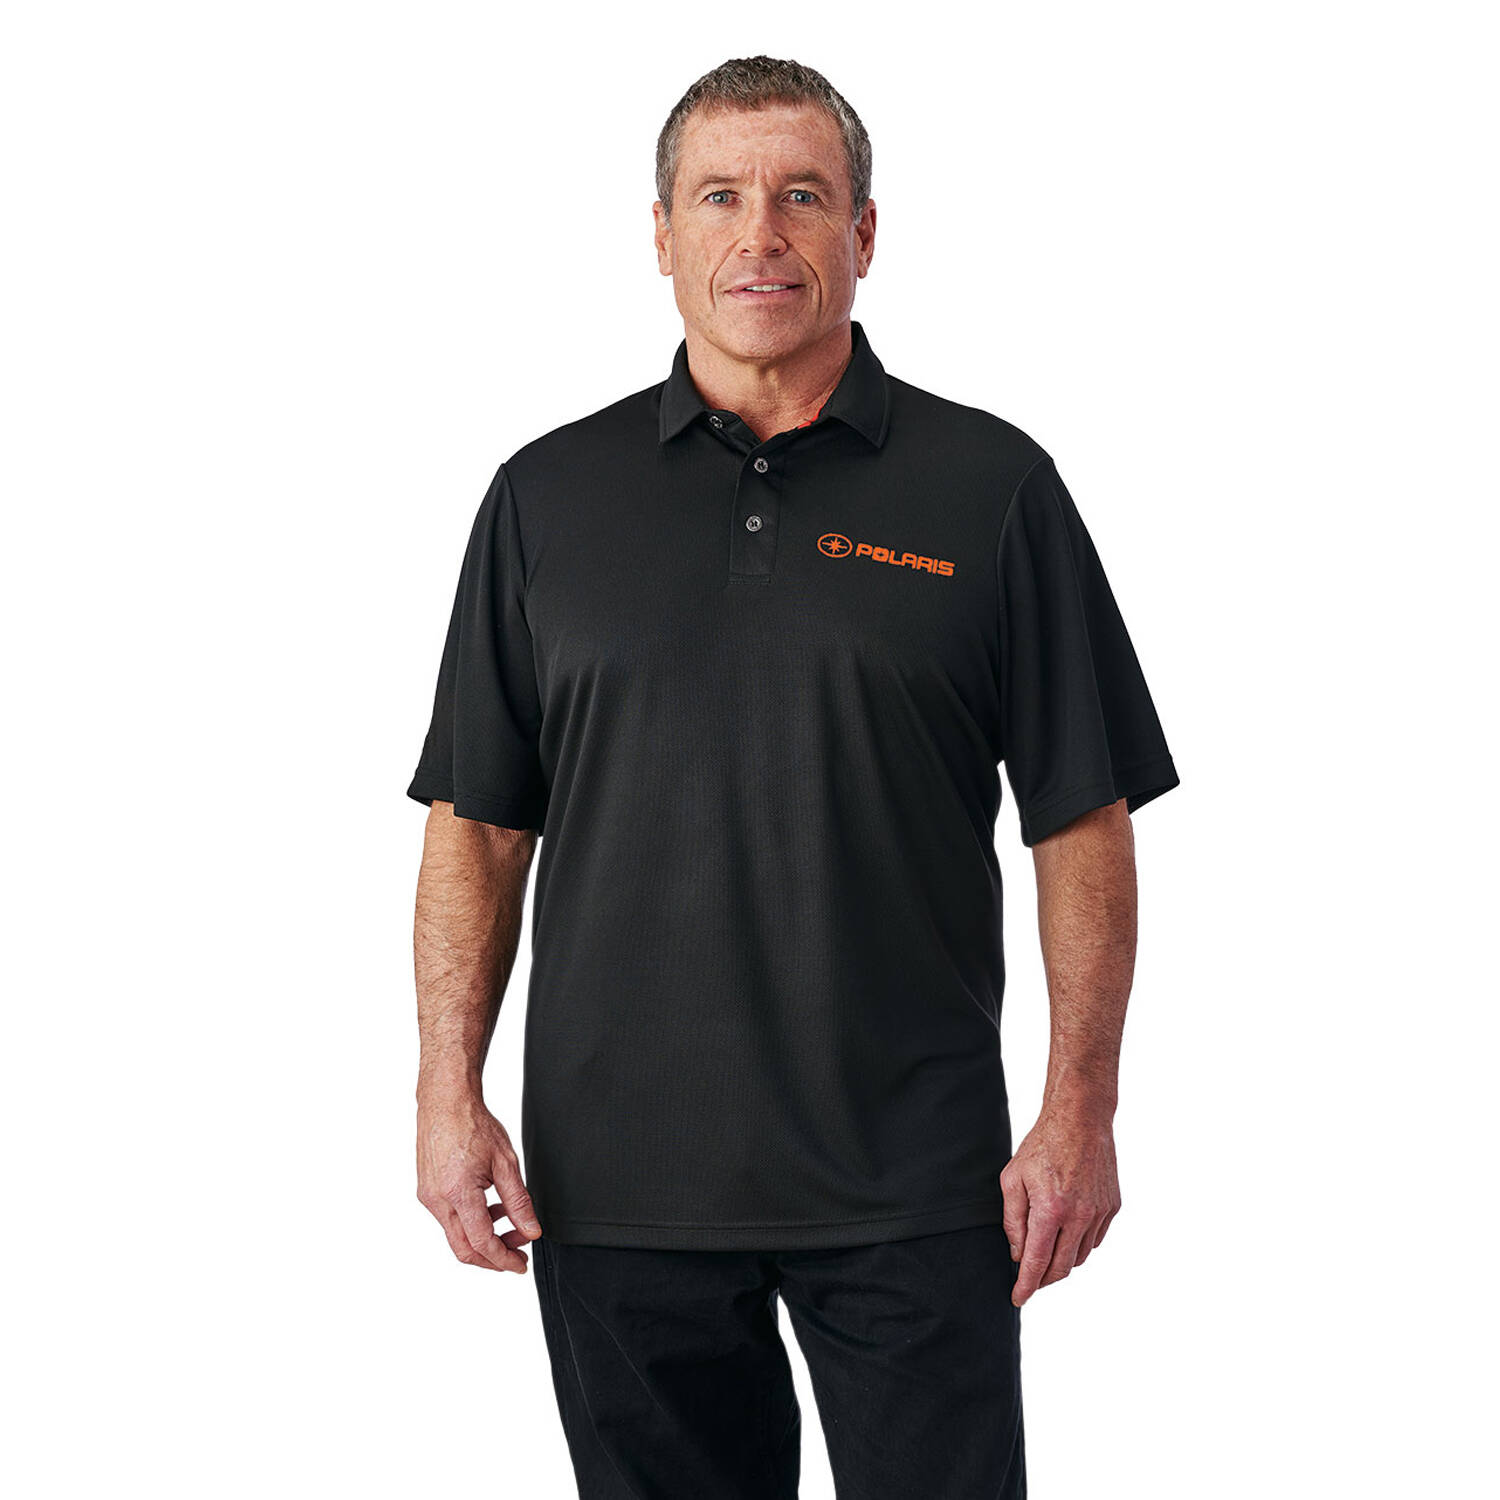 Men's Short-Sleeve Solid Tech Polo with Polaris® Logo, Black